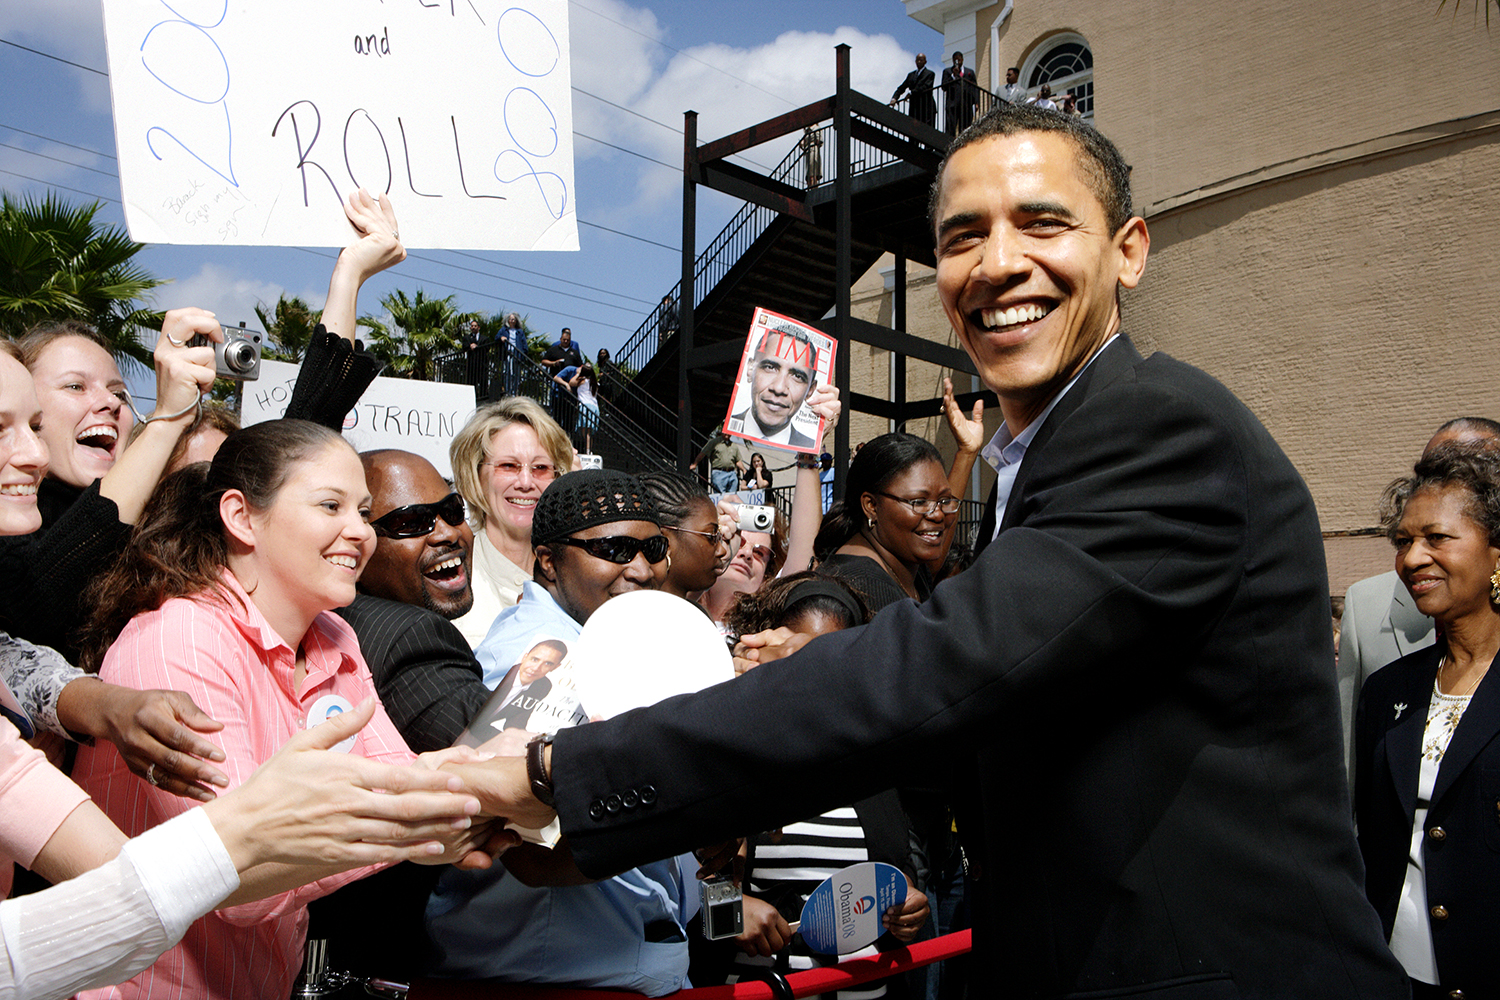 Barack Obama - St. Petersburg, FL campaigning in early 2008 for the Democratic Presidential ticket.